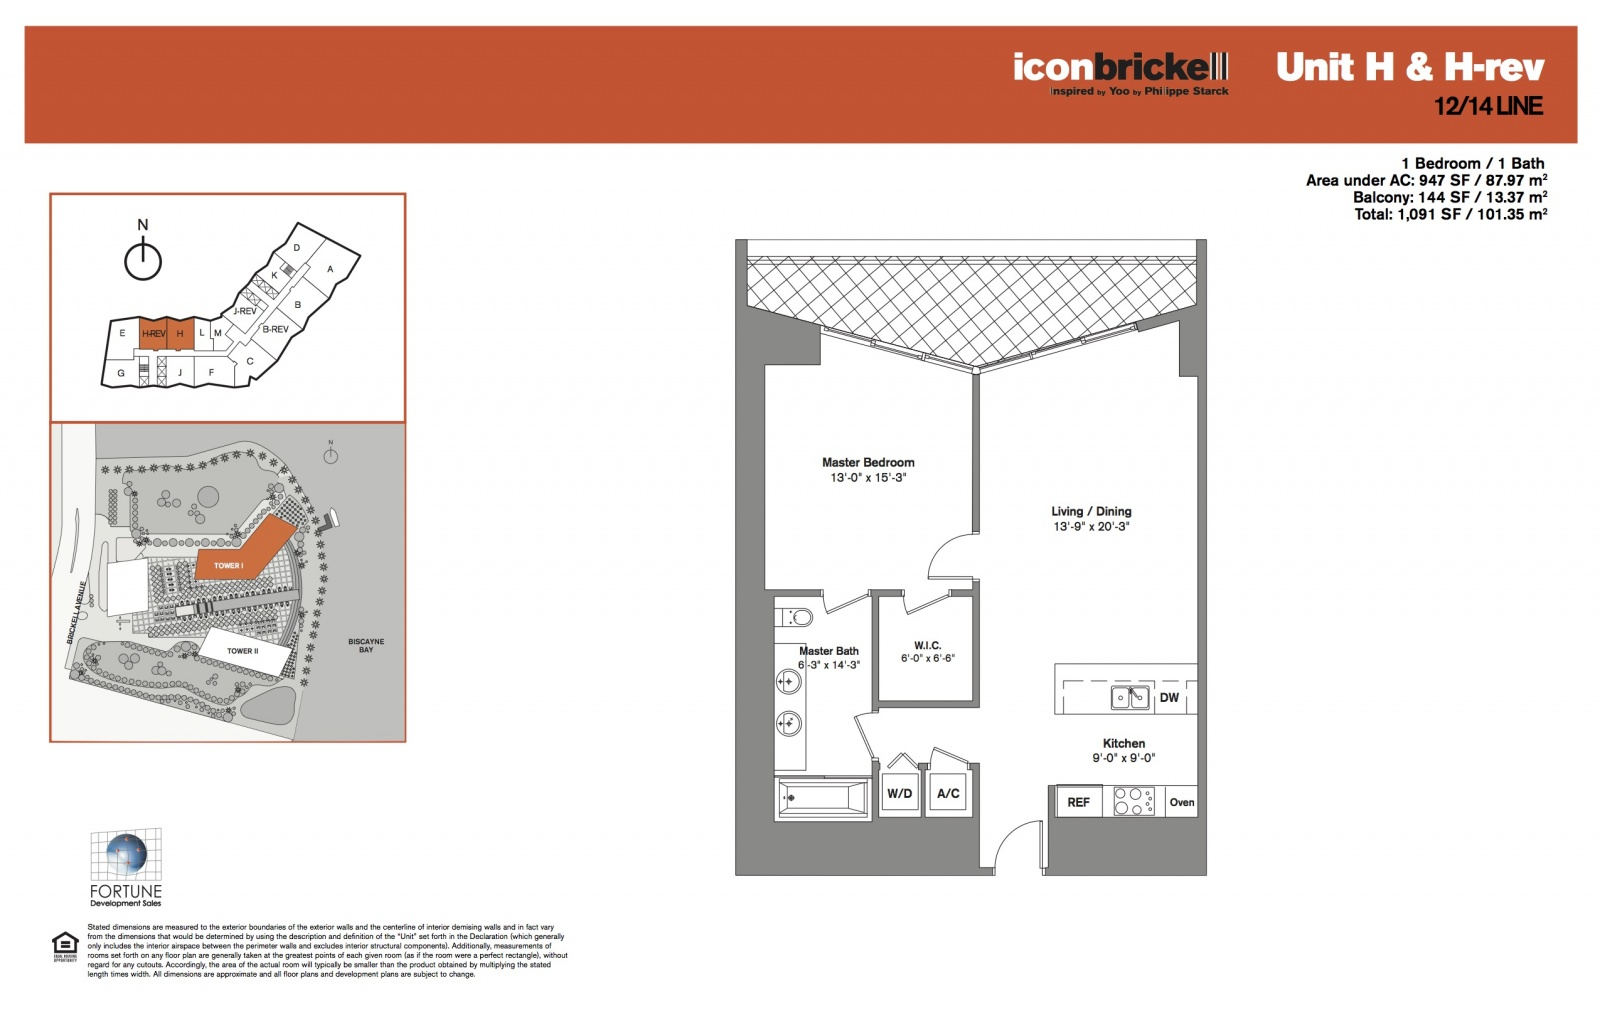 Icon Brickell One, lines 12 and 14 floor plans